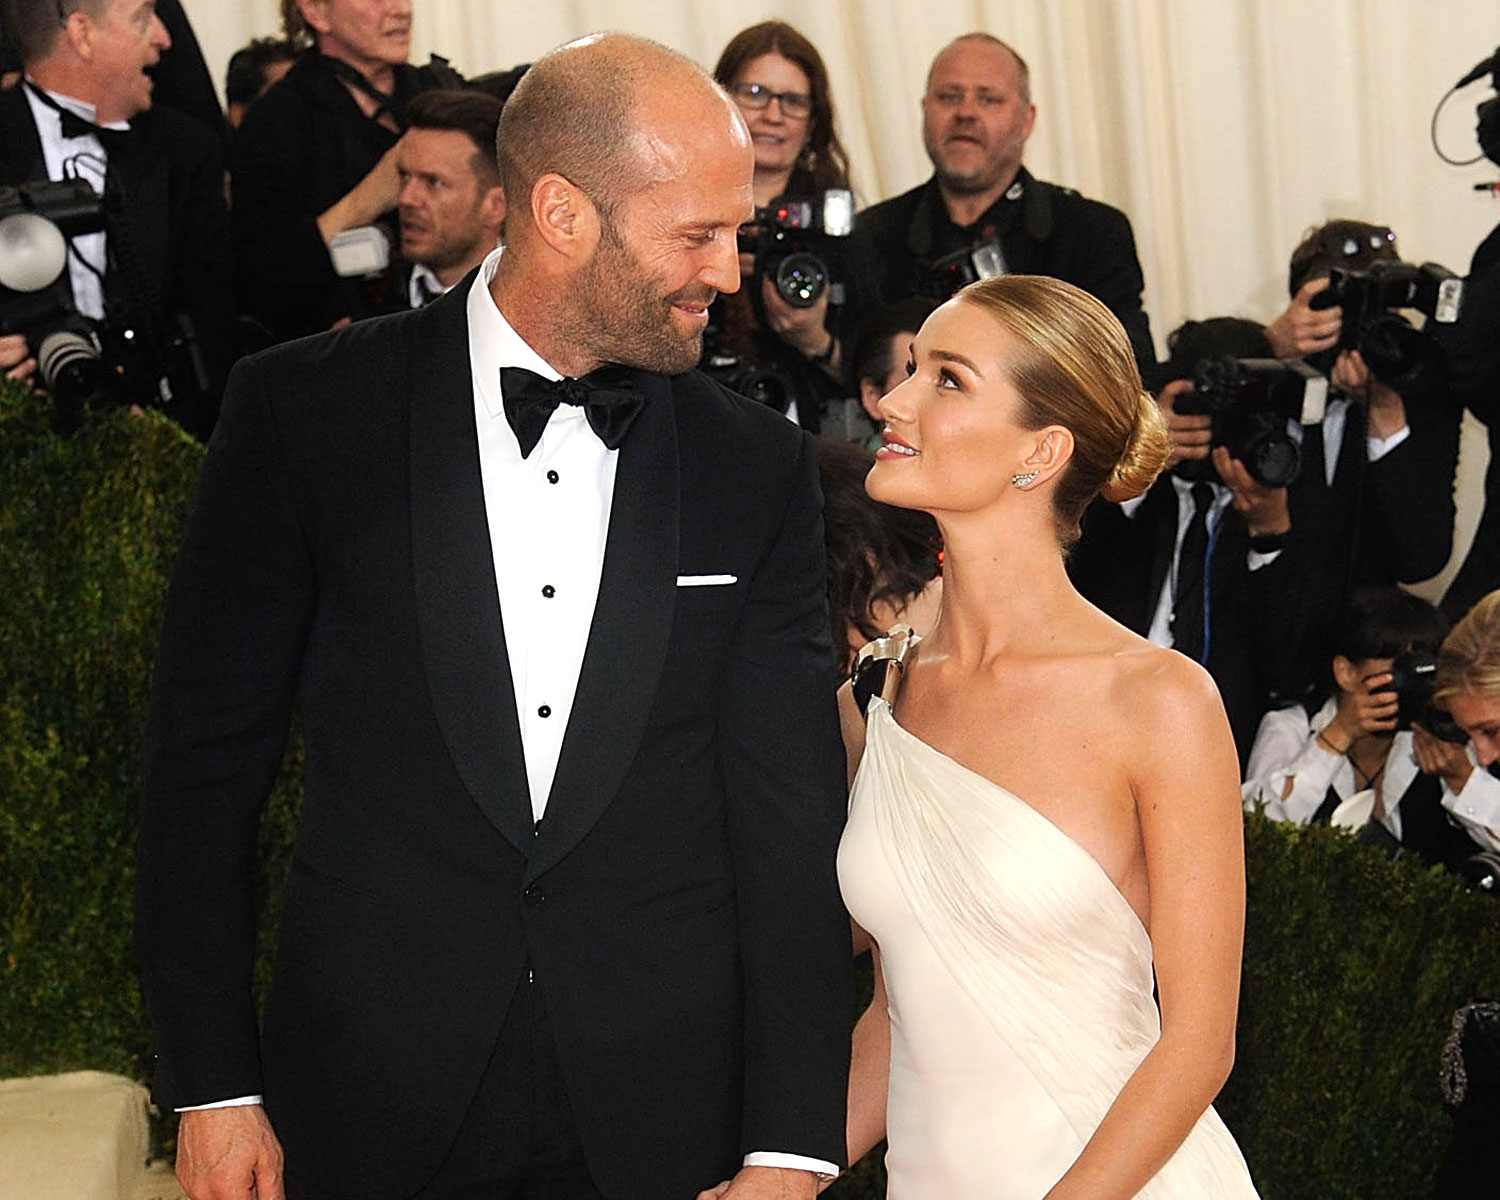 Rosie Huntington Whiteley Is Expecting A Baby With Fiance